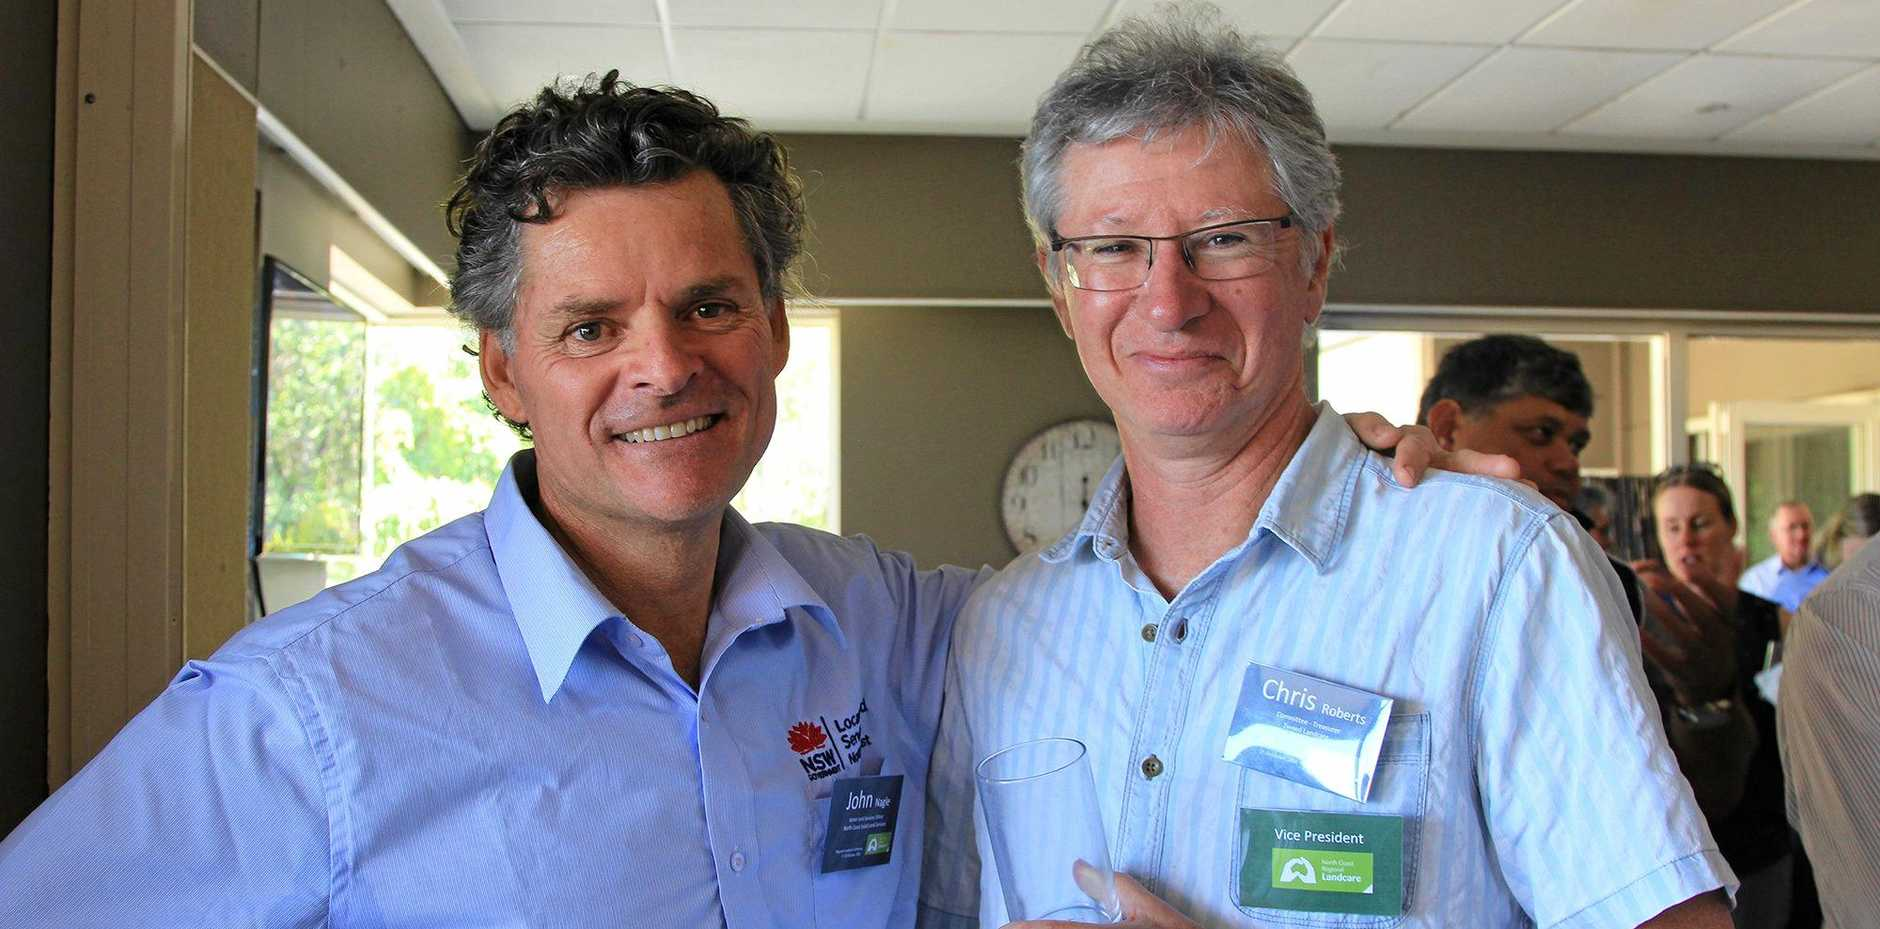 John Nagle from North Coast Local Land Services and Chris Roberts from Tweed Landcare. The North Coast Local Land Services and North Coast Regional Landcare partnership is achieving real results for the community and environment.